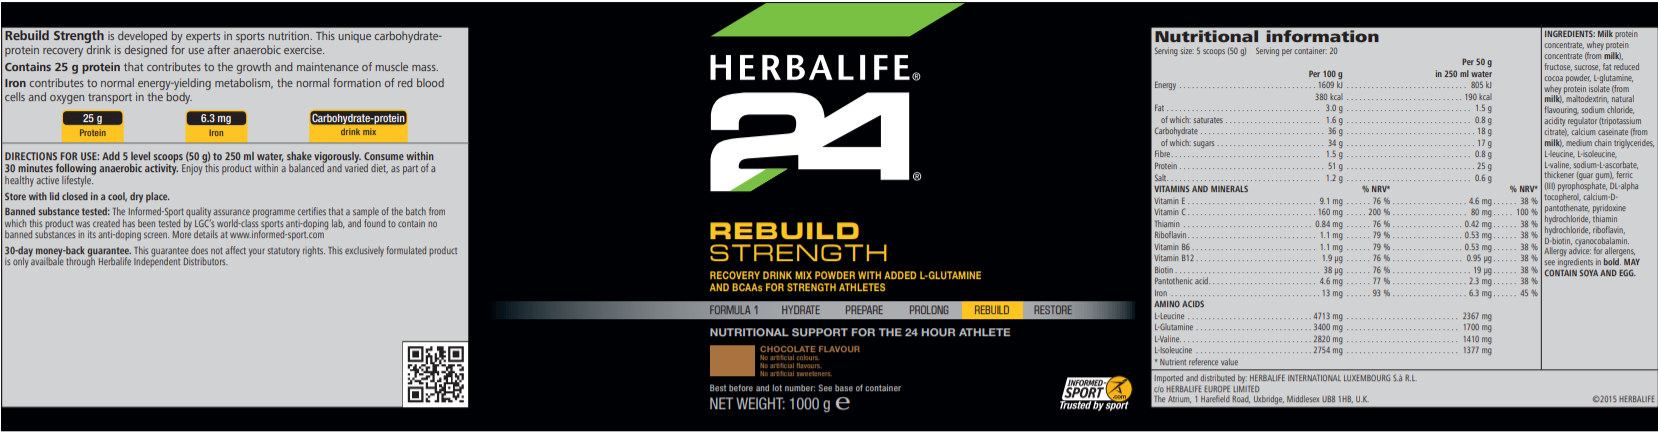 Nutritional Information Herbalife Rebuild Strength Chocolate